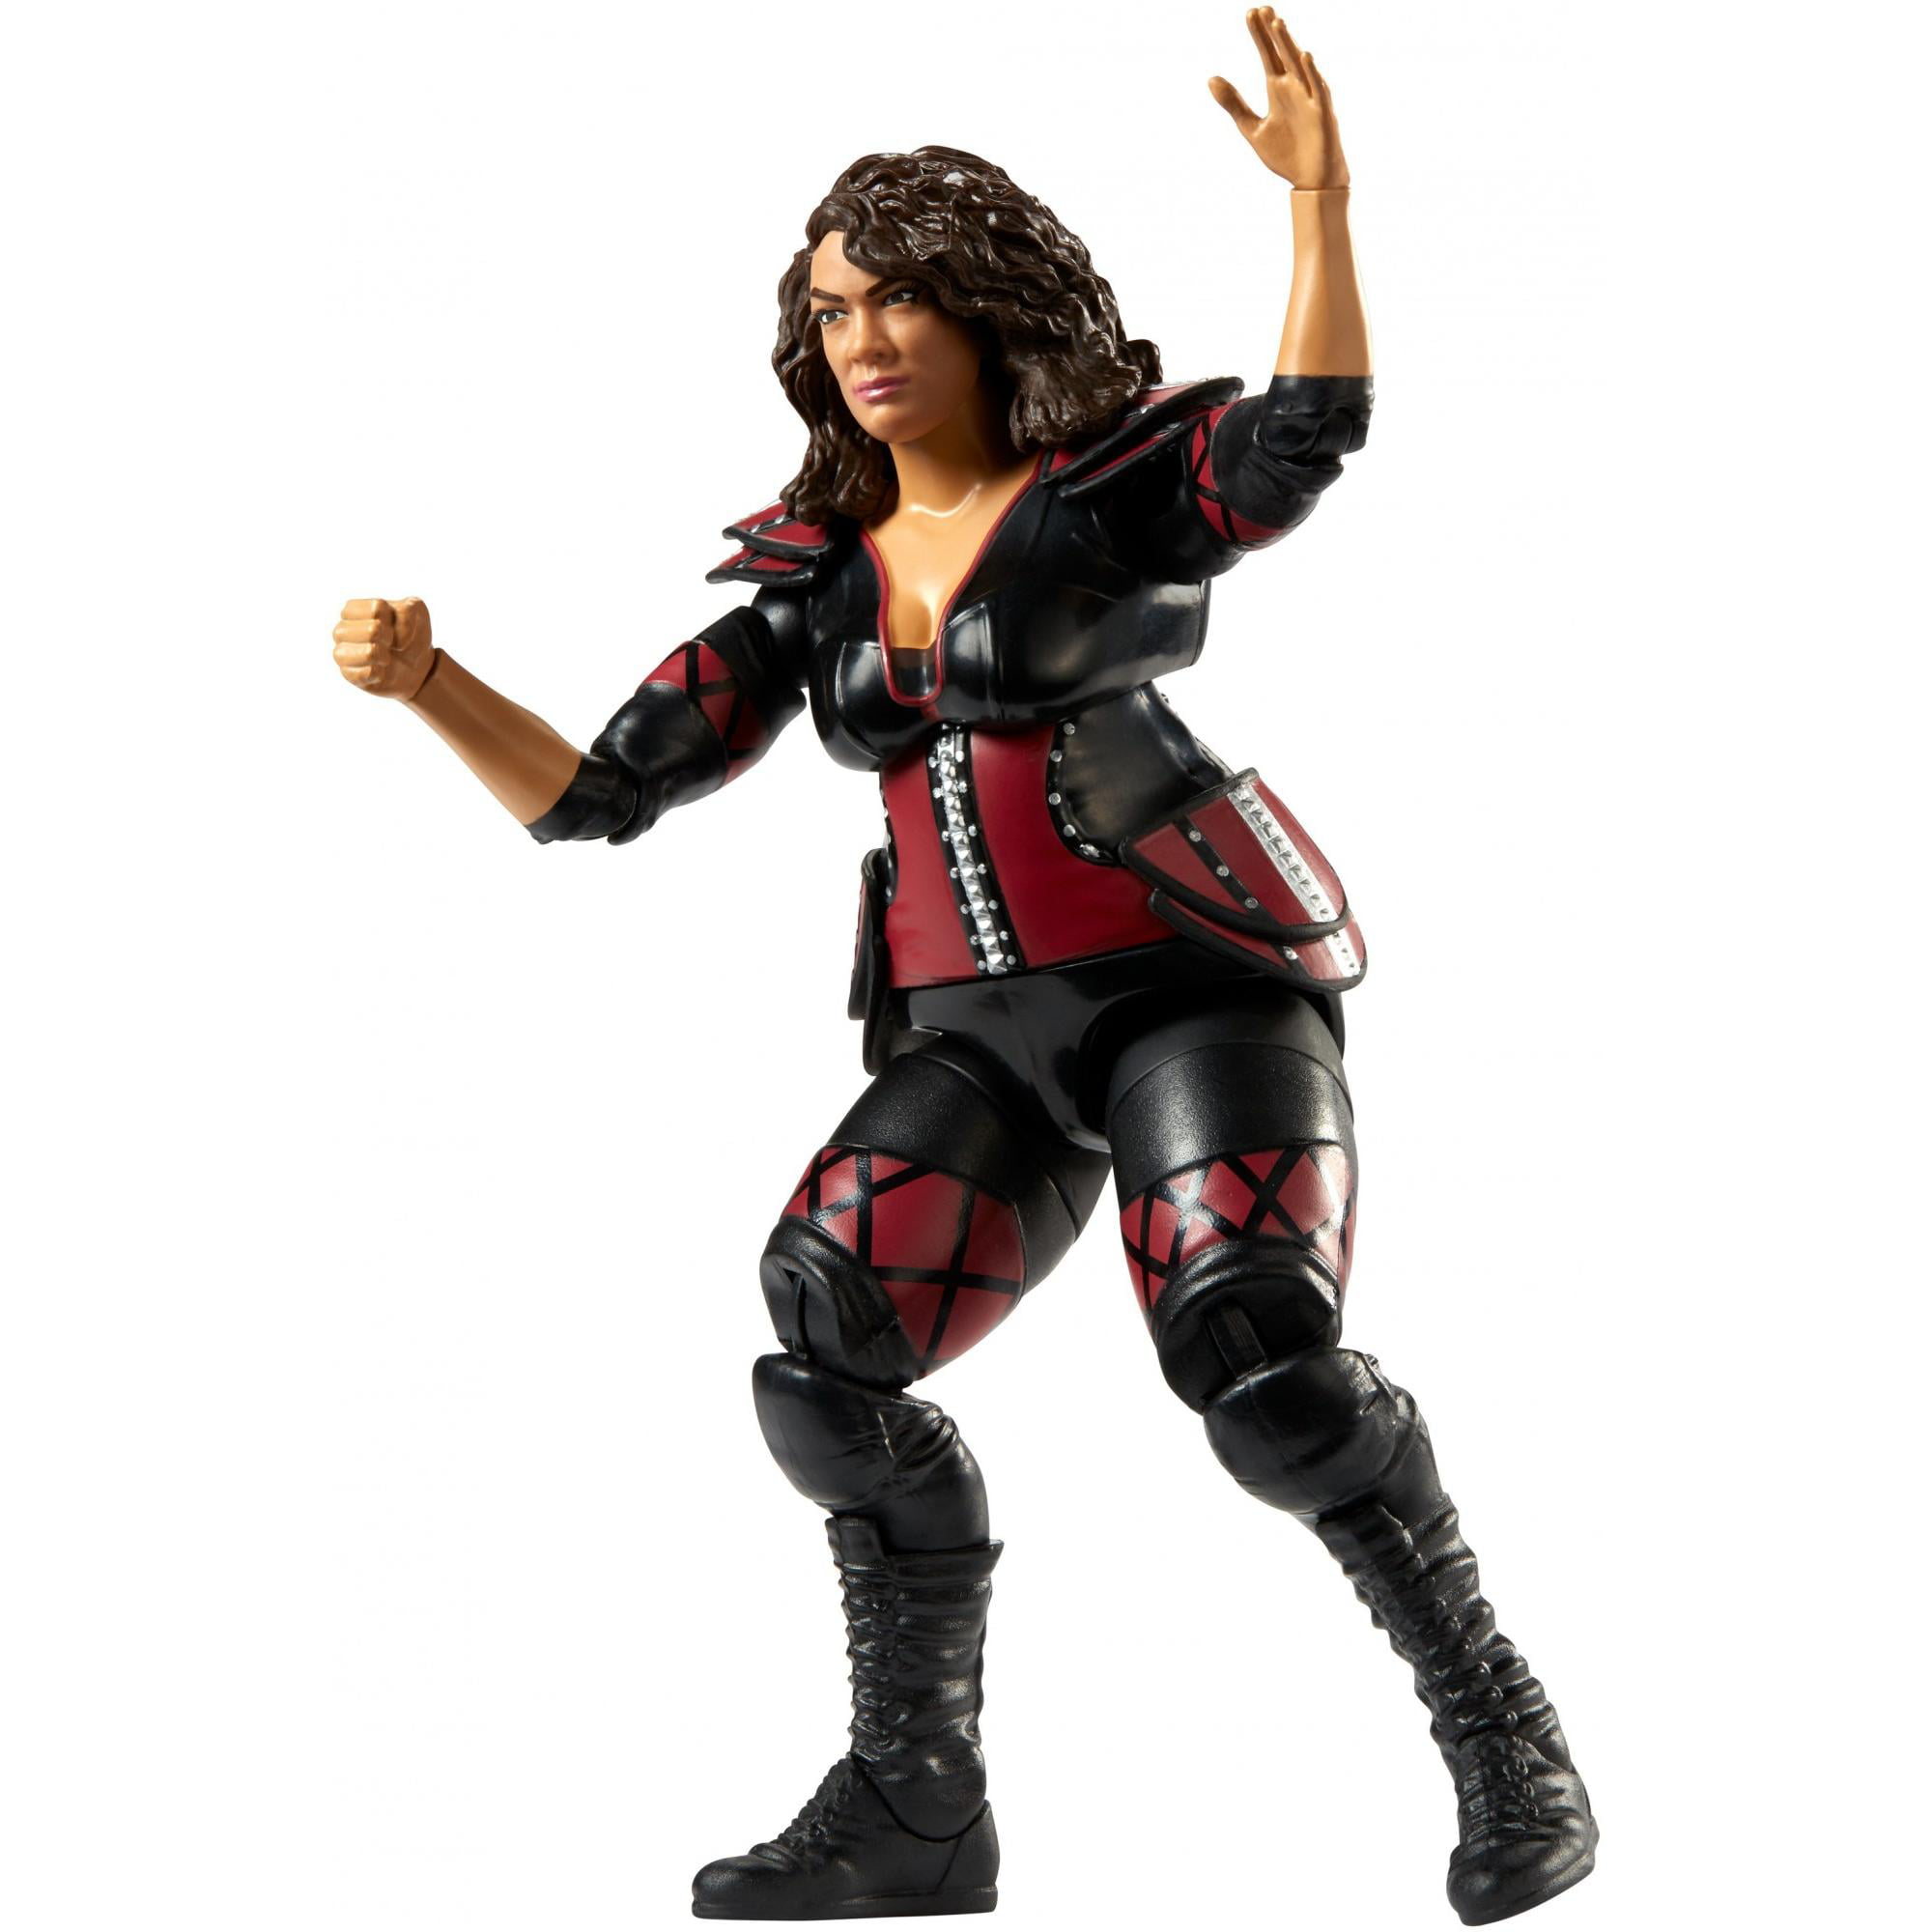 WWE Nia Jax Figure by Mattel